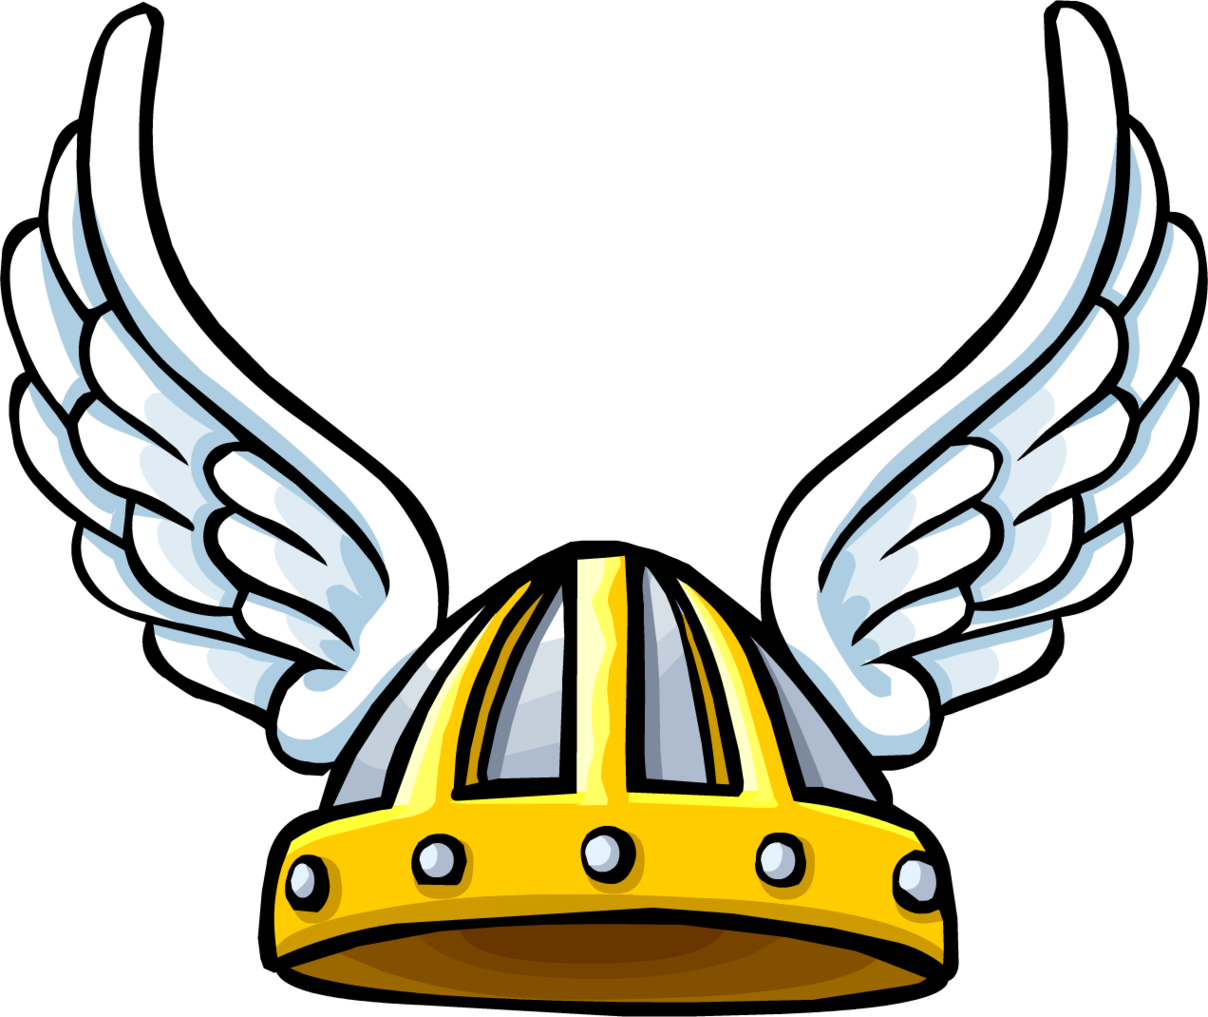 Clipart viking hat free to use clip art resource.